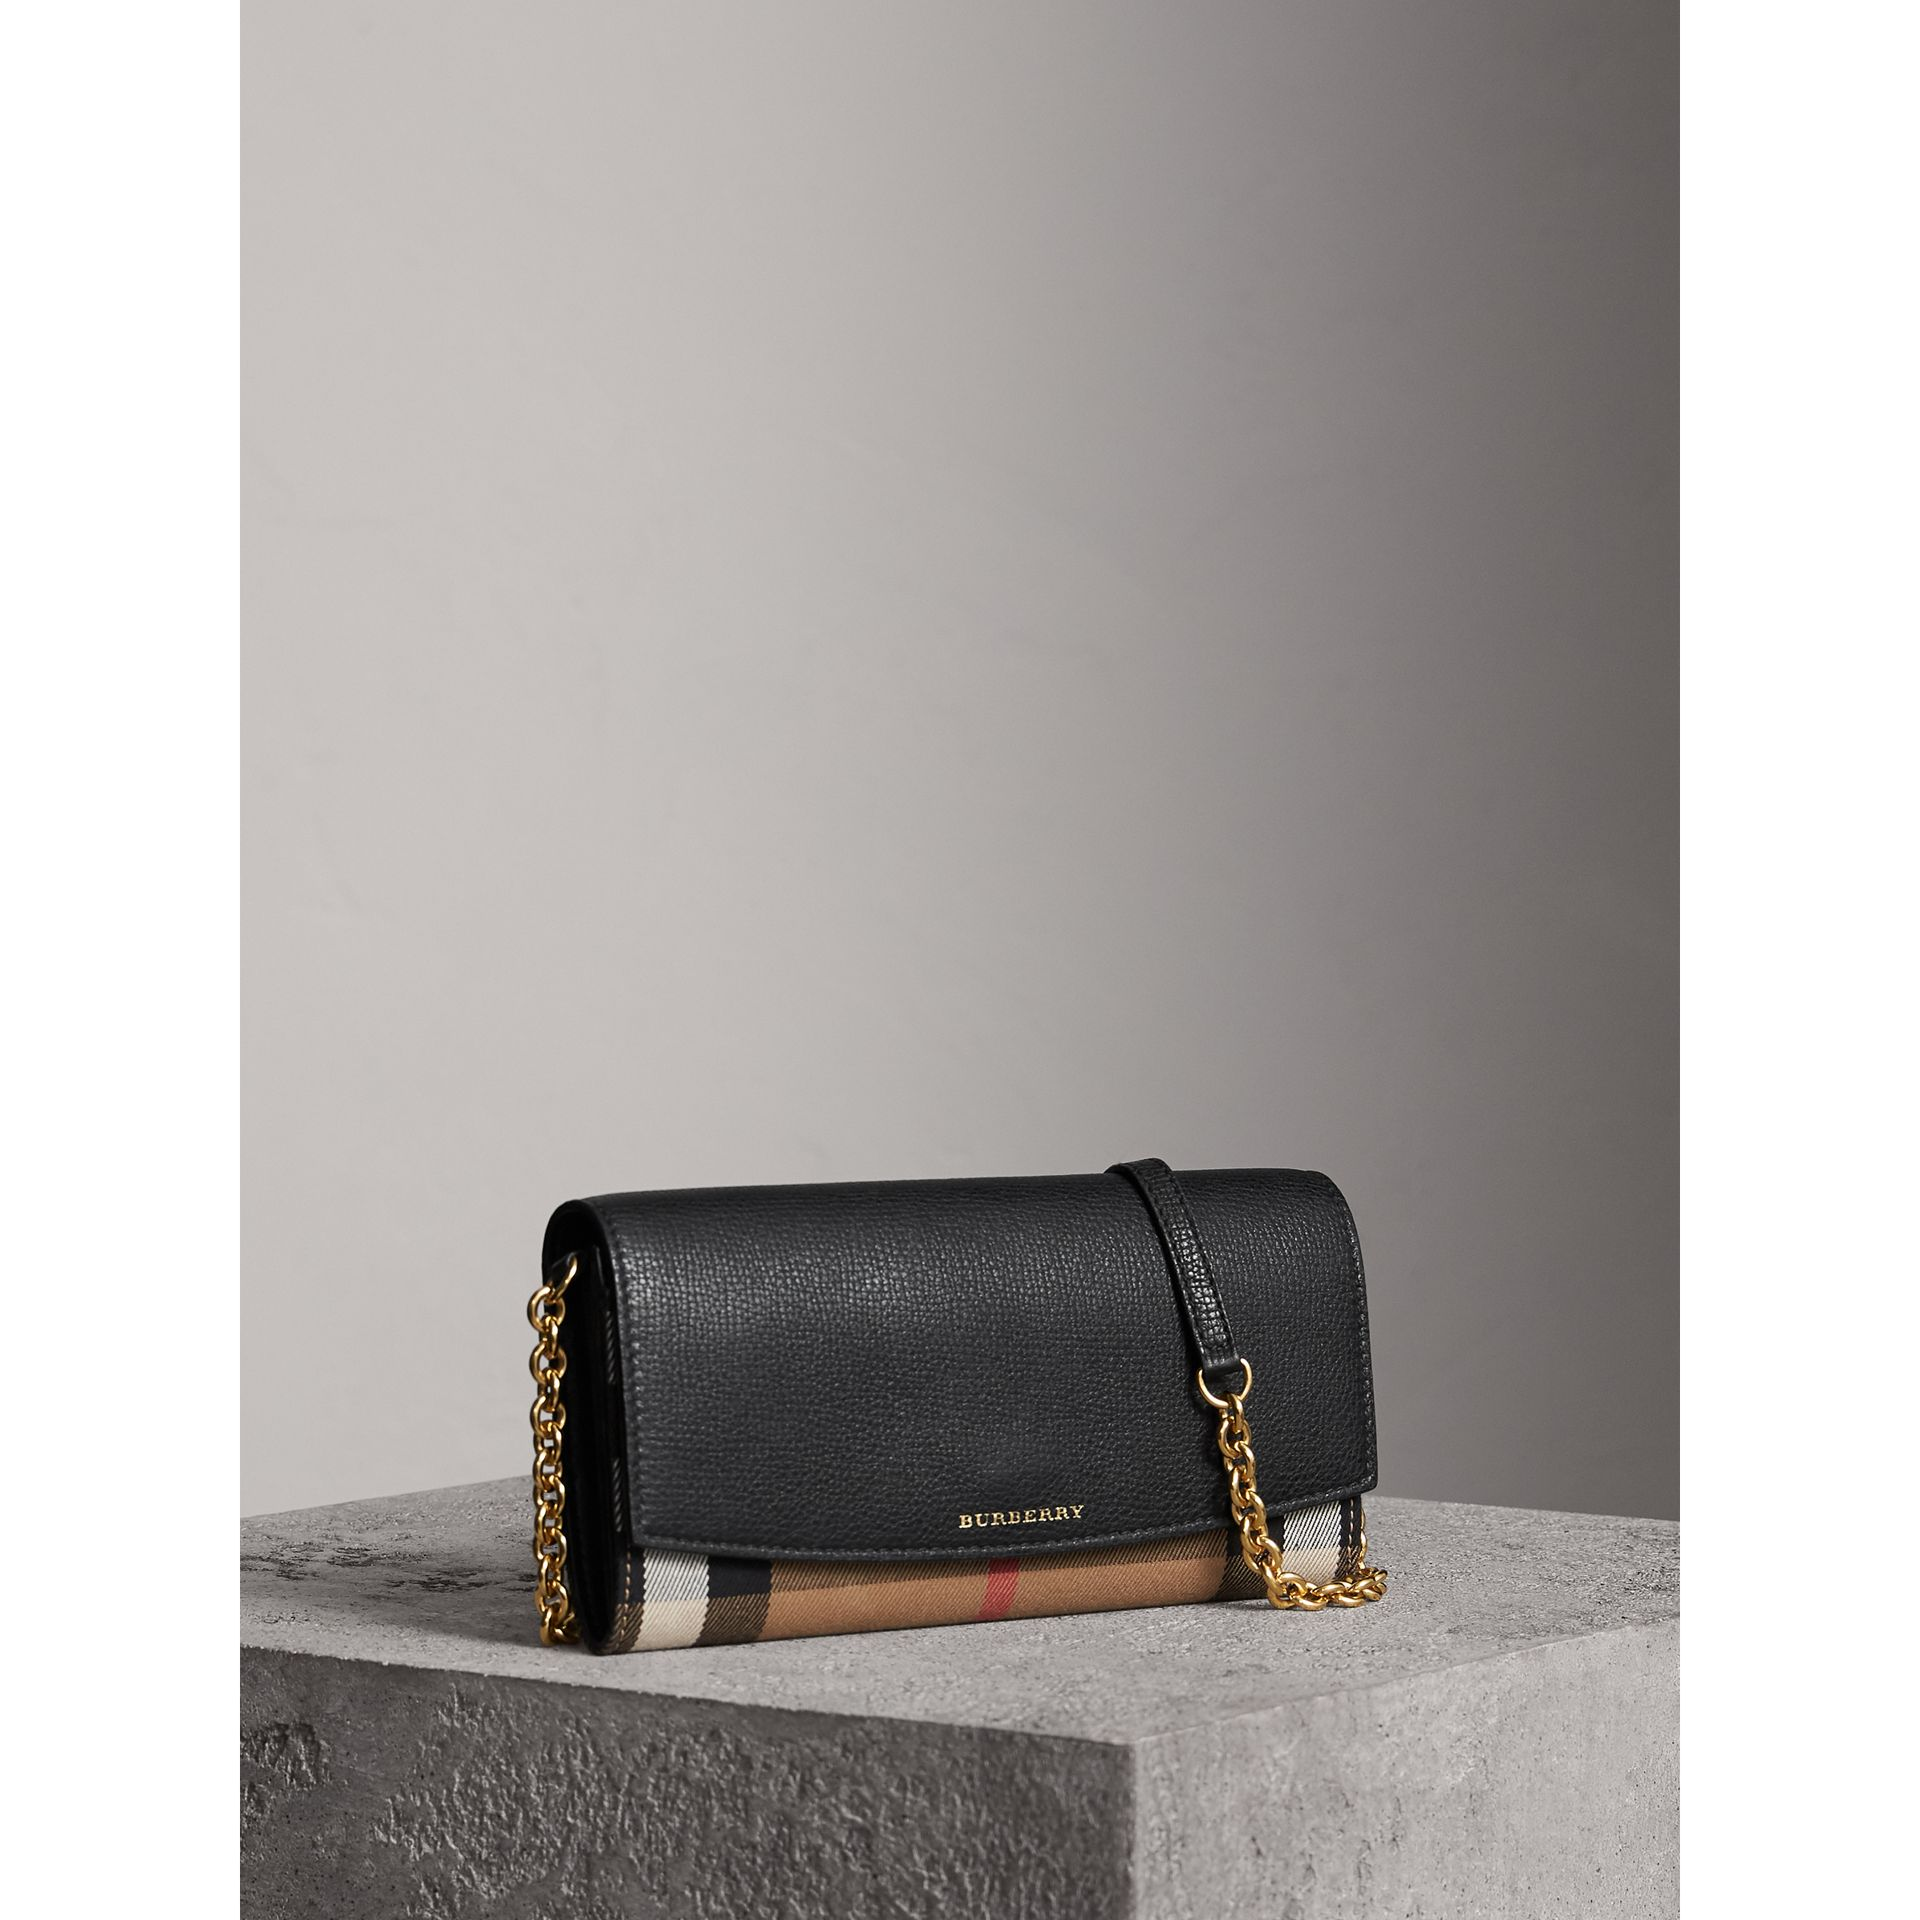 House Check and Leather Wallet with Chain in Black - Women | Burberry Hong Kong - gallery image 1